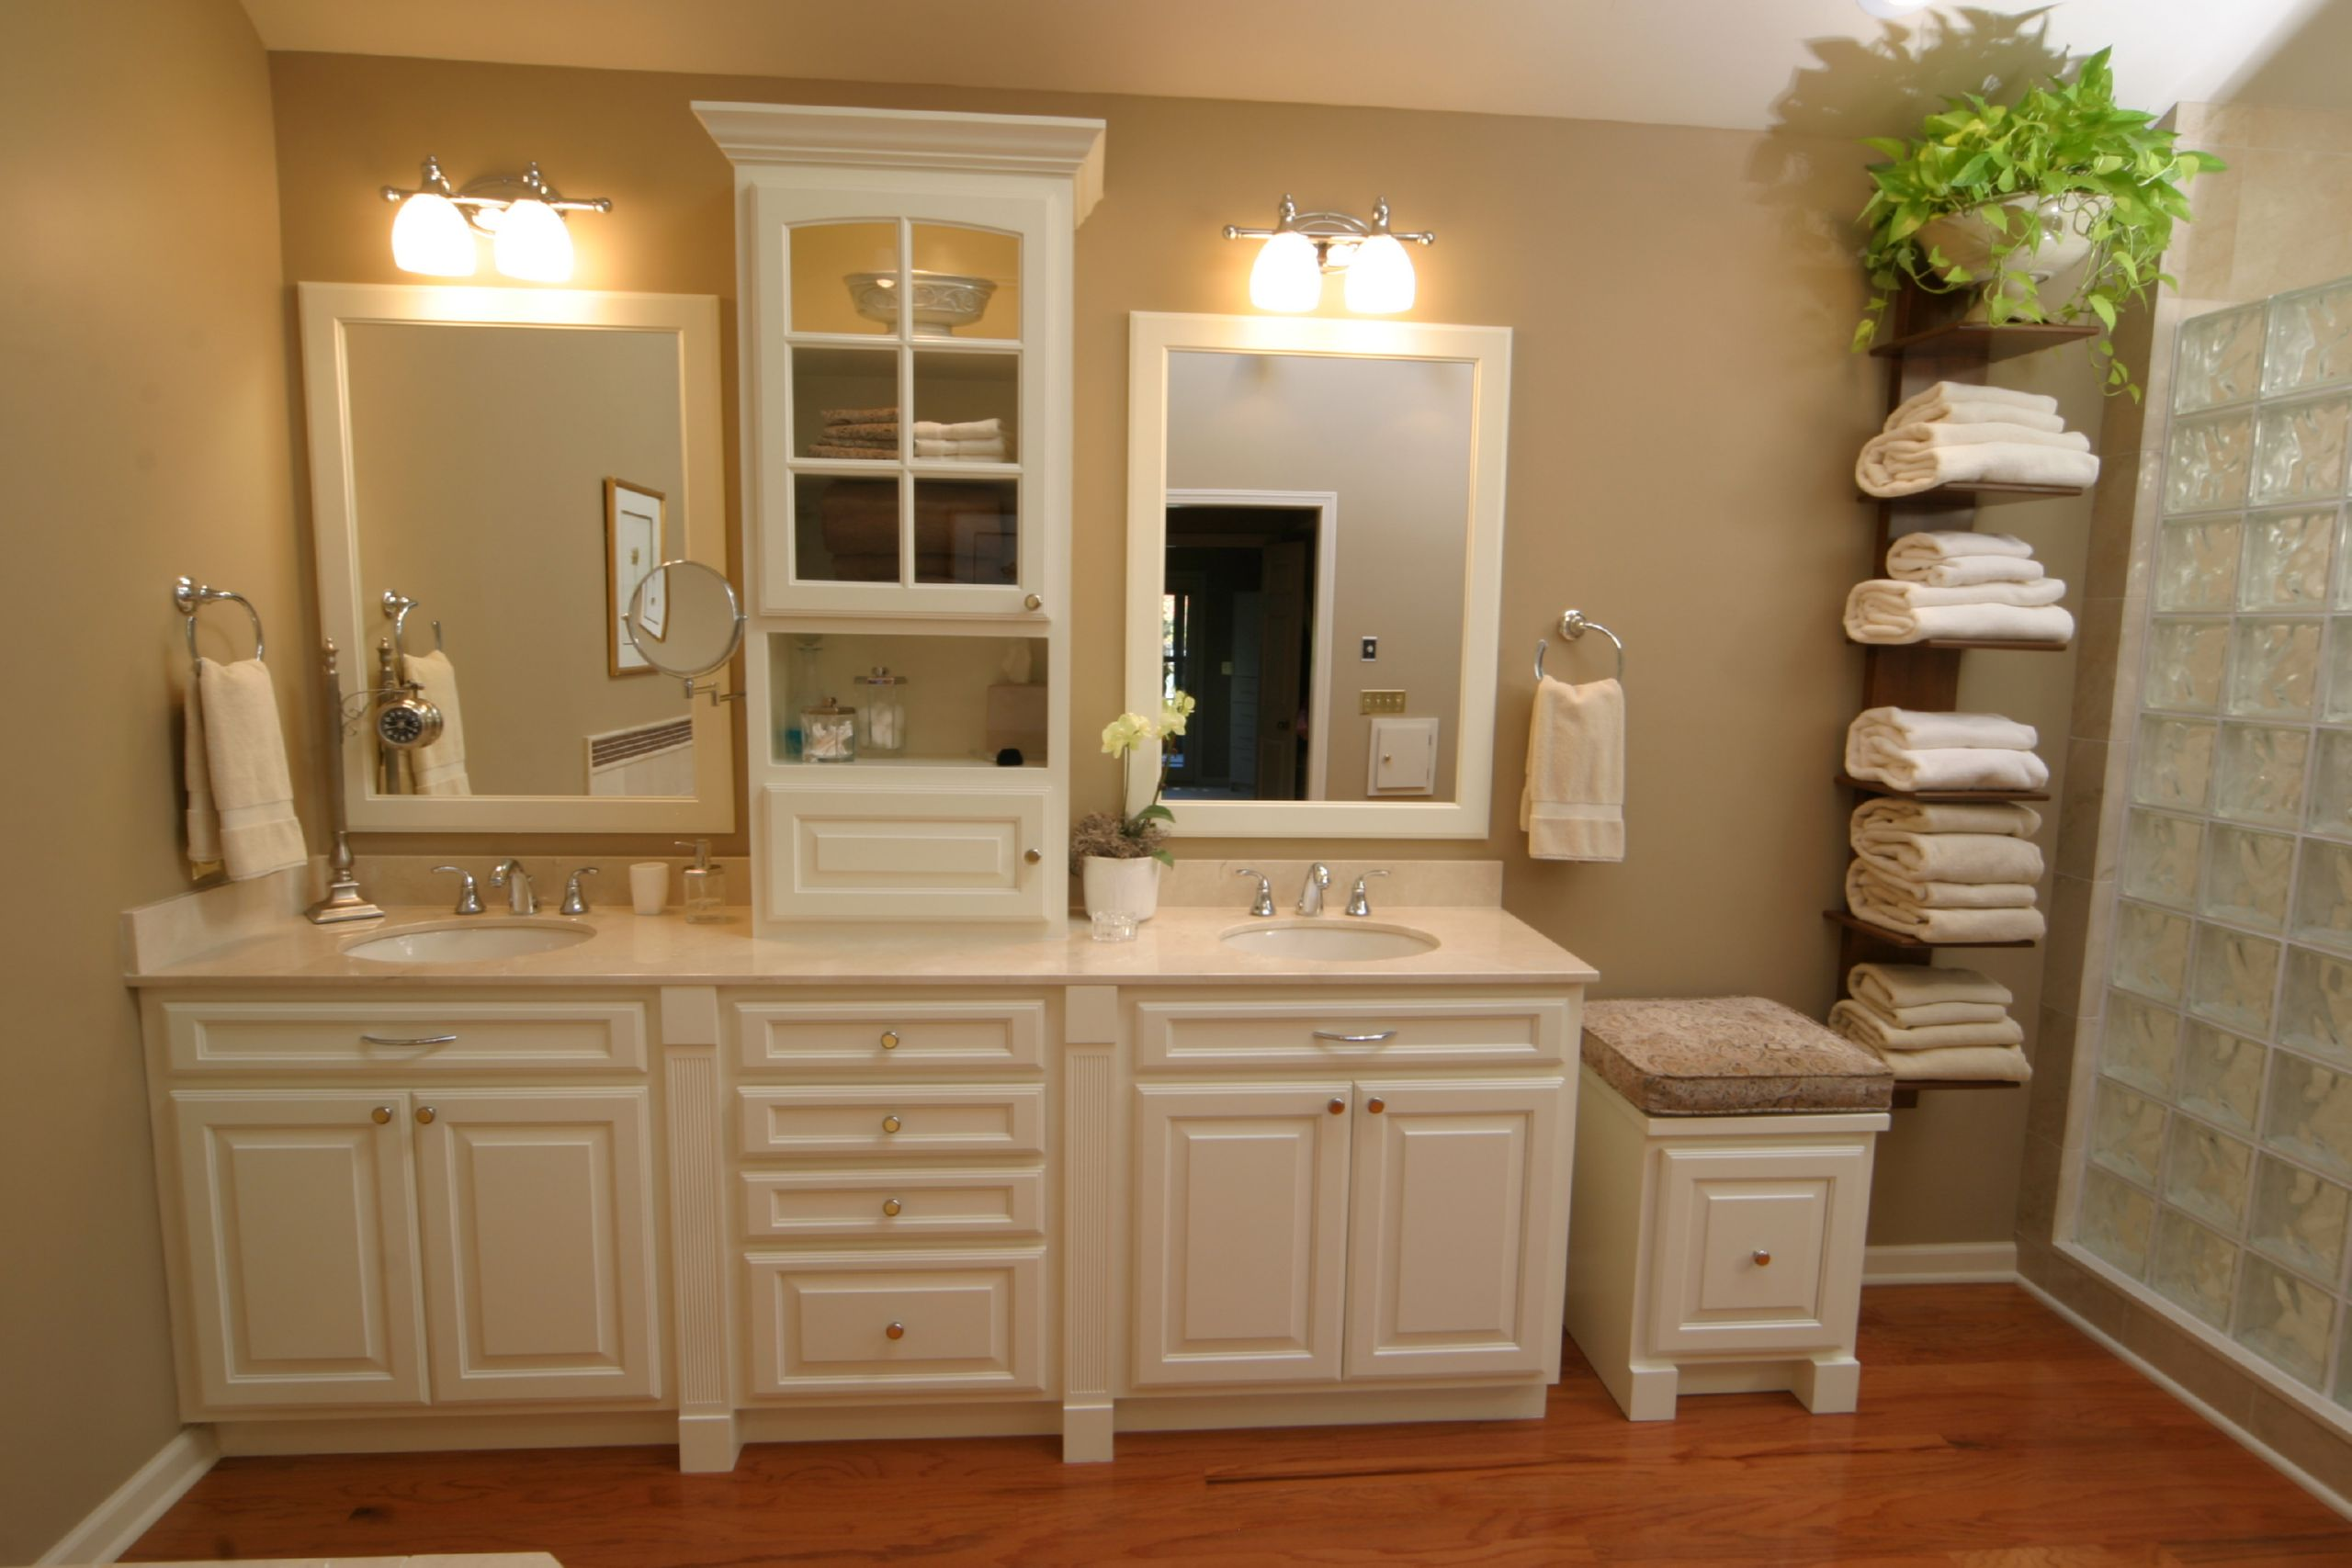 Bathroom remodeling tips. Bathroom remodeling tips   NJW Construction